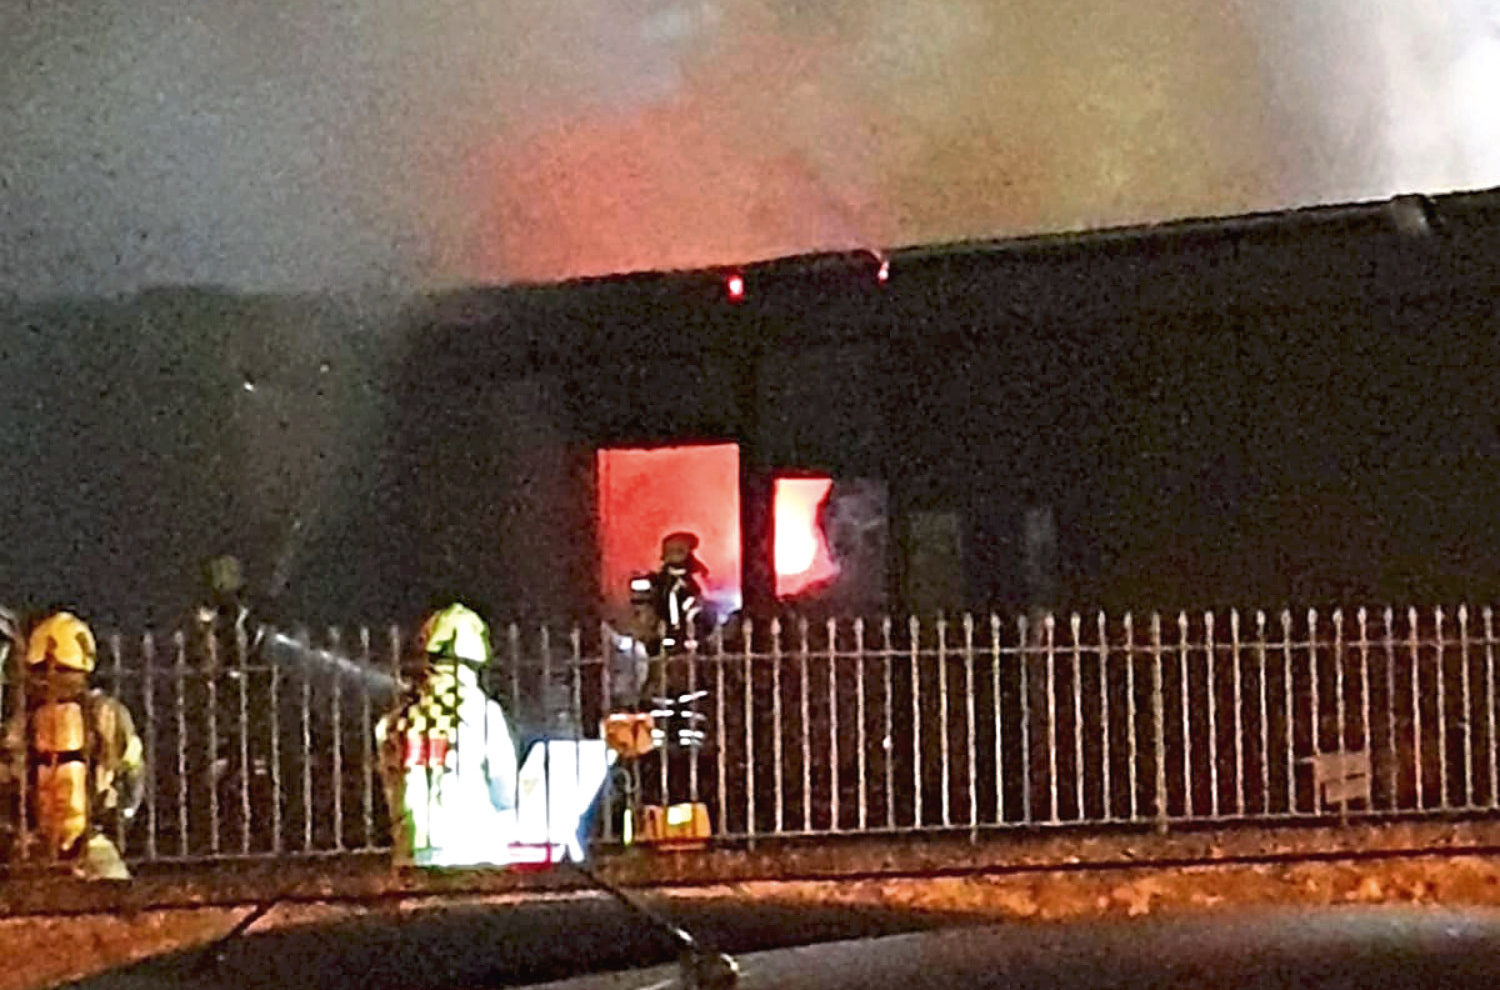 Fire crews at the scene of the blaze on Tuesday night